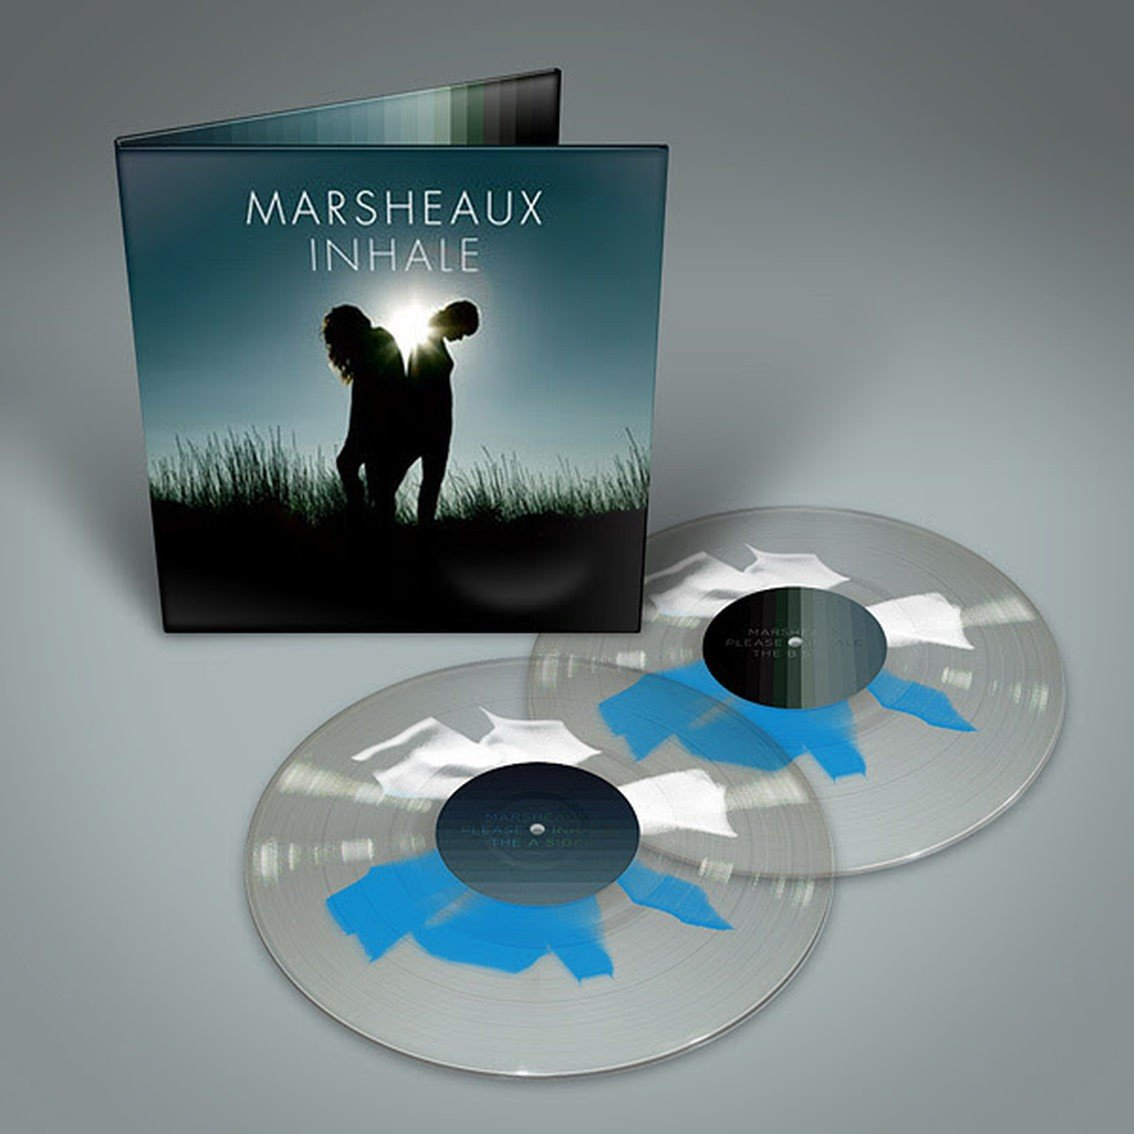 Greek synthpop duo Marsheaux reissue'Inhale' album on rare shape splatter vinyl - only 199 copies available - order now